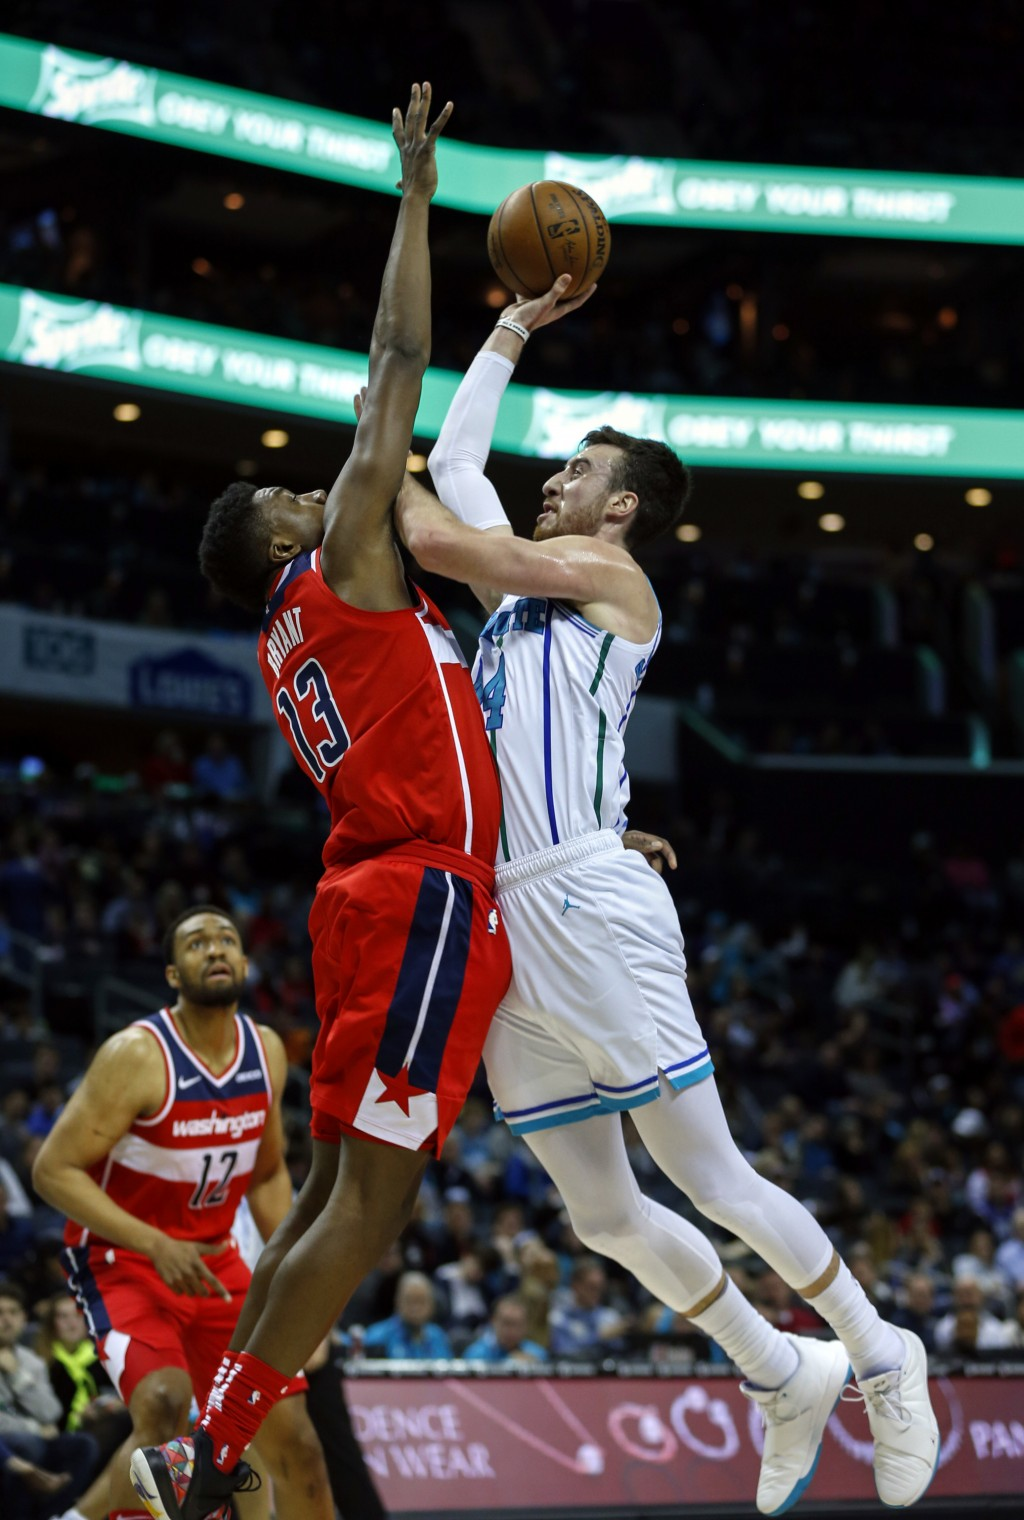 Charlotte Hornets forward Frank Kaminsky, right, shoots over Washington Wizards center Thomas Bryant (13) in the first half of an NBA basketball game